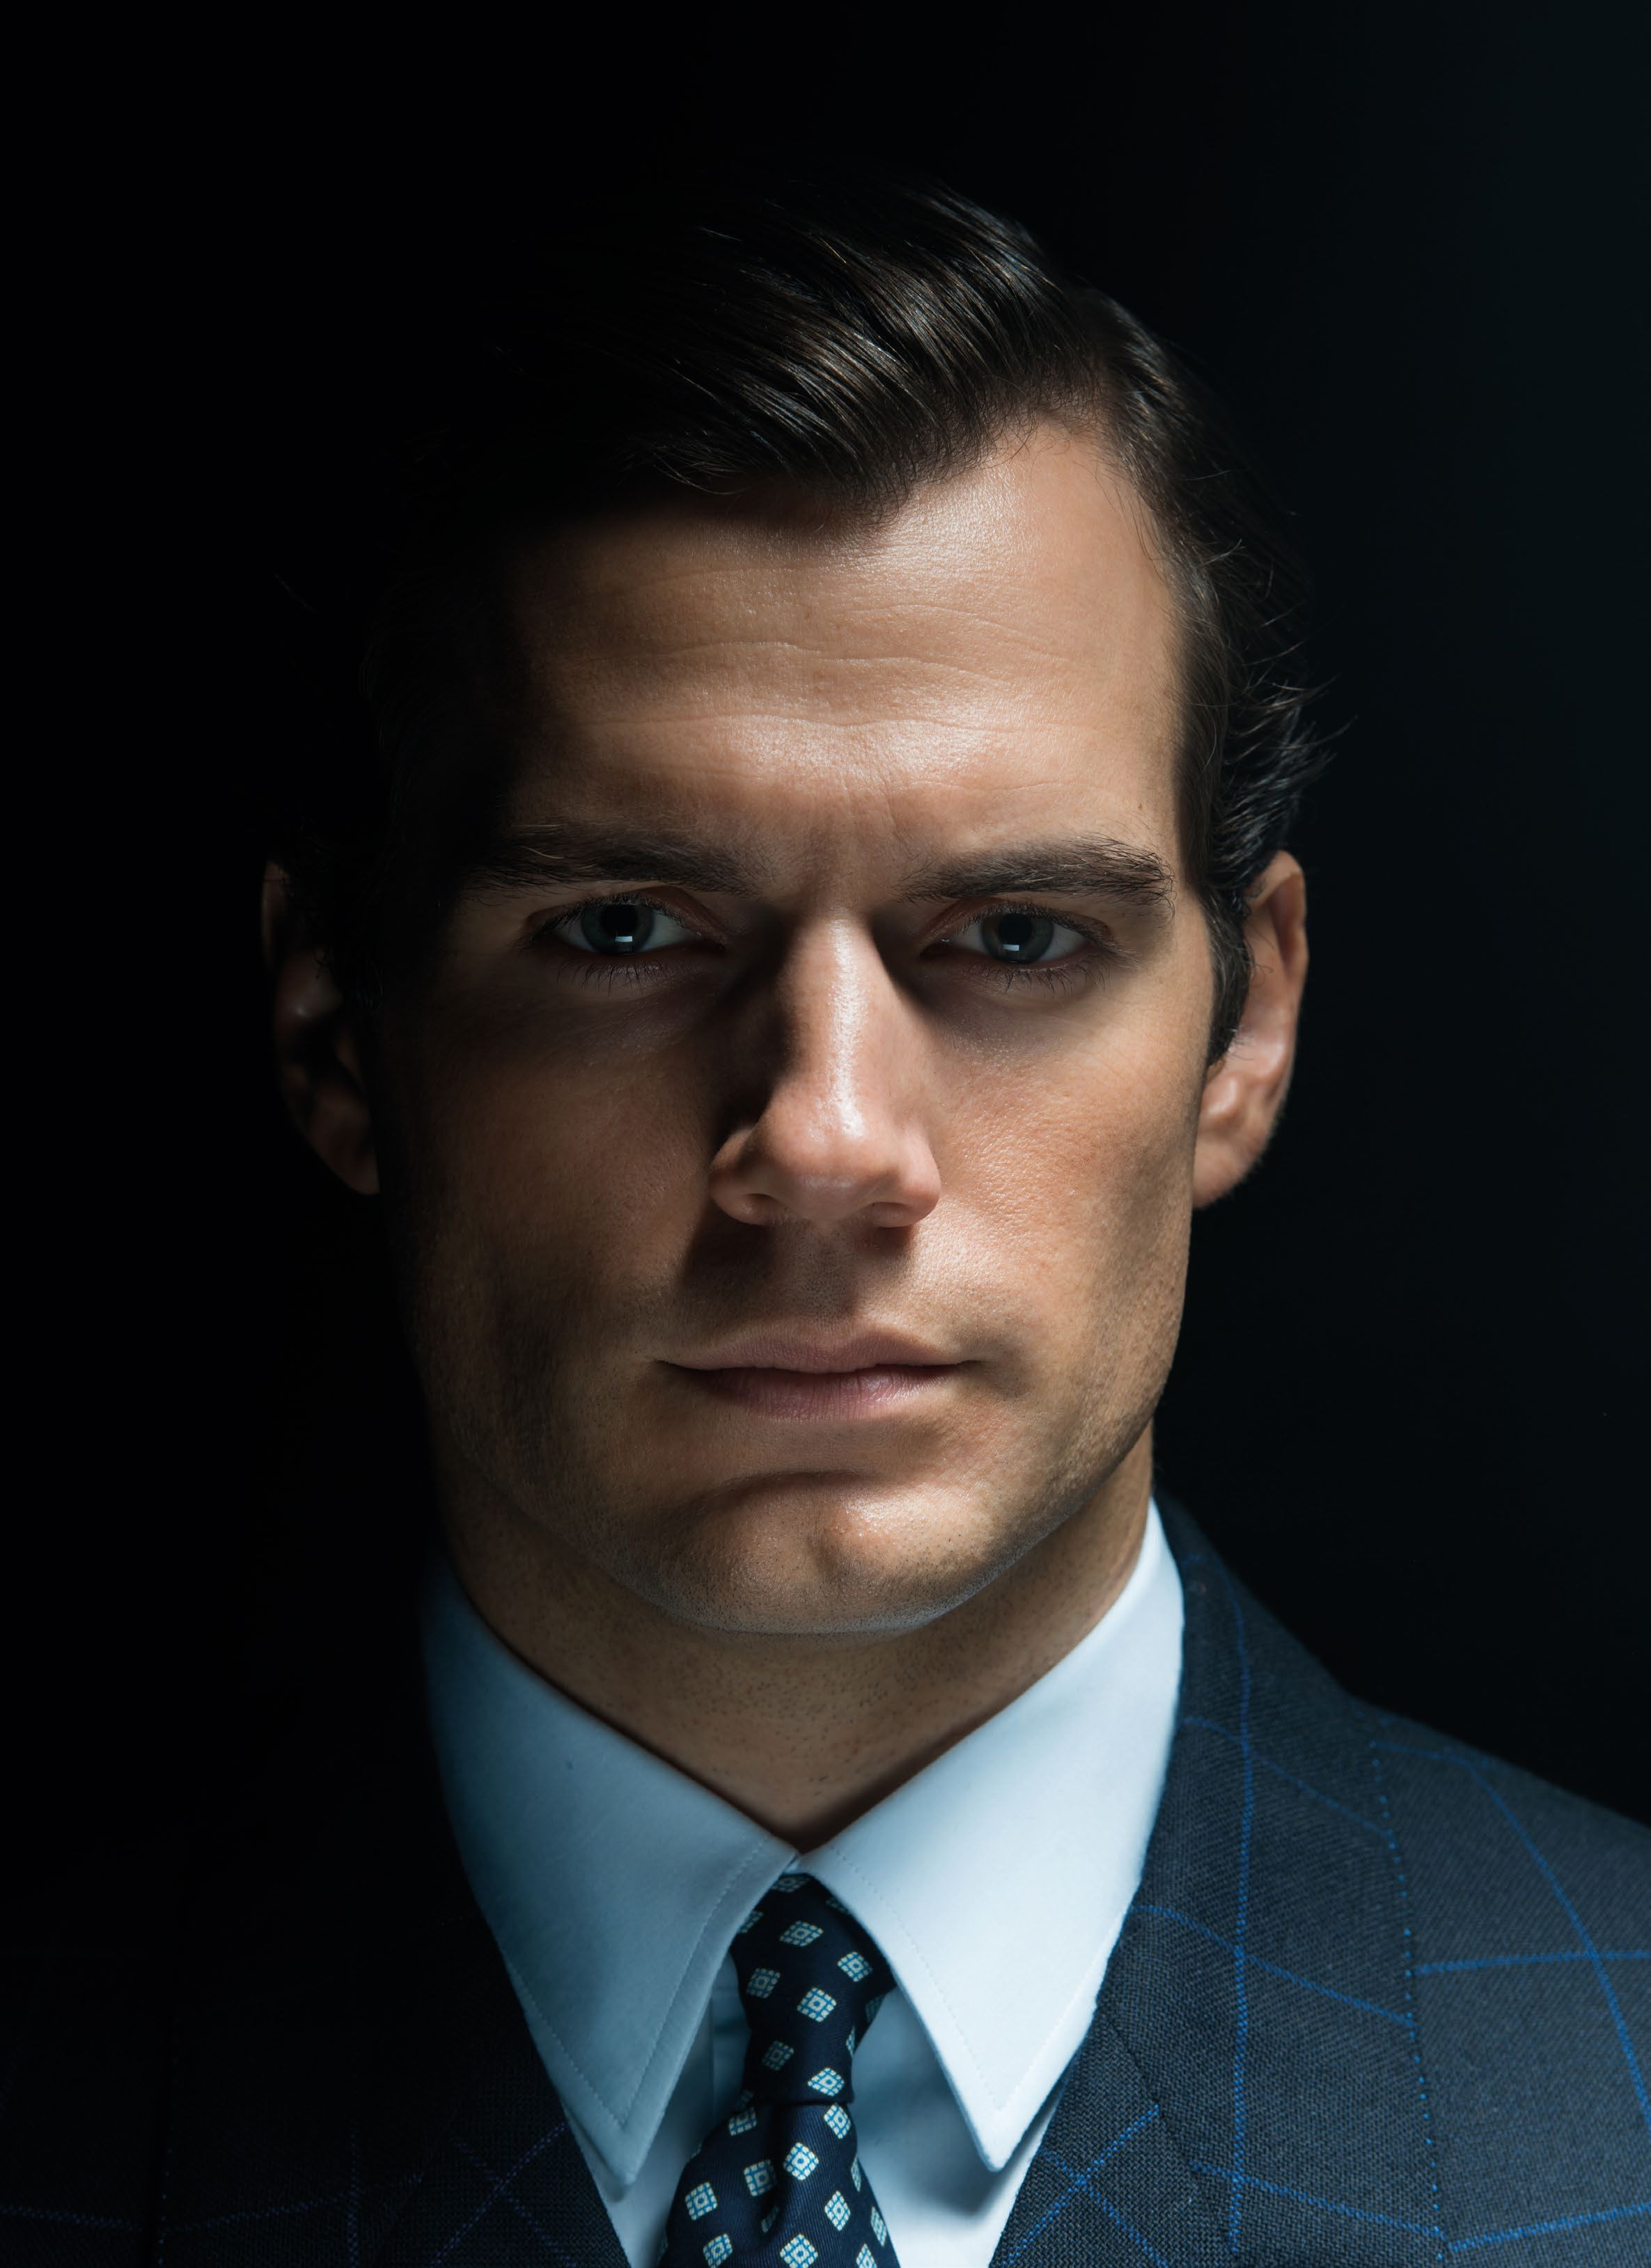 henry cavill 2016henry cavill gif, henry cavill young, henry cavill vk, henry cavill height, henry cavill twitter, henry cavill 2017, henry cavill instagram, henry cavill workout, henry cavill 2016, henry cavill eyes, henry cavill gif hunt, henry cavill films, henry cavill рост, henry cavill training, henry cavill kinopoisk, henry cavill wife, henry cavill and jason momoa, henry cavill wiki, henry cavill long hair, henry cavill movies